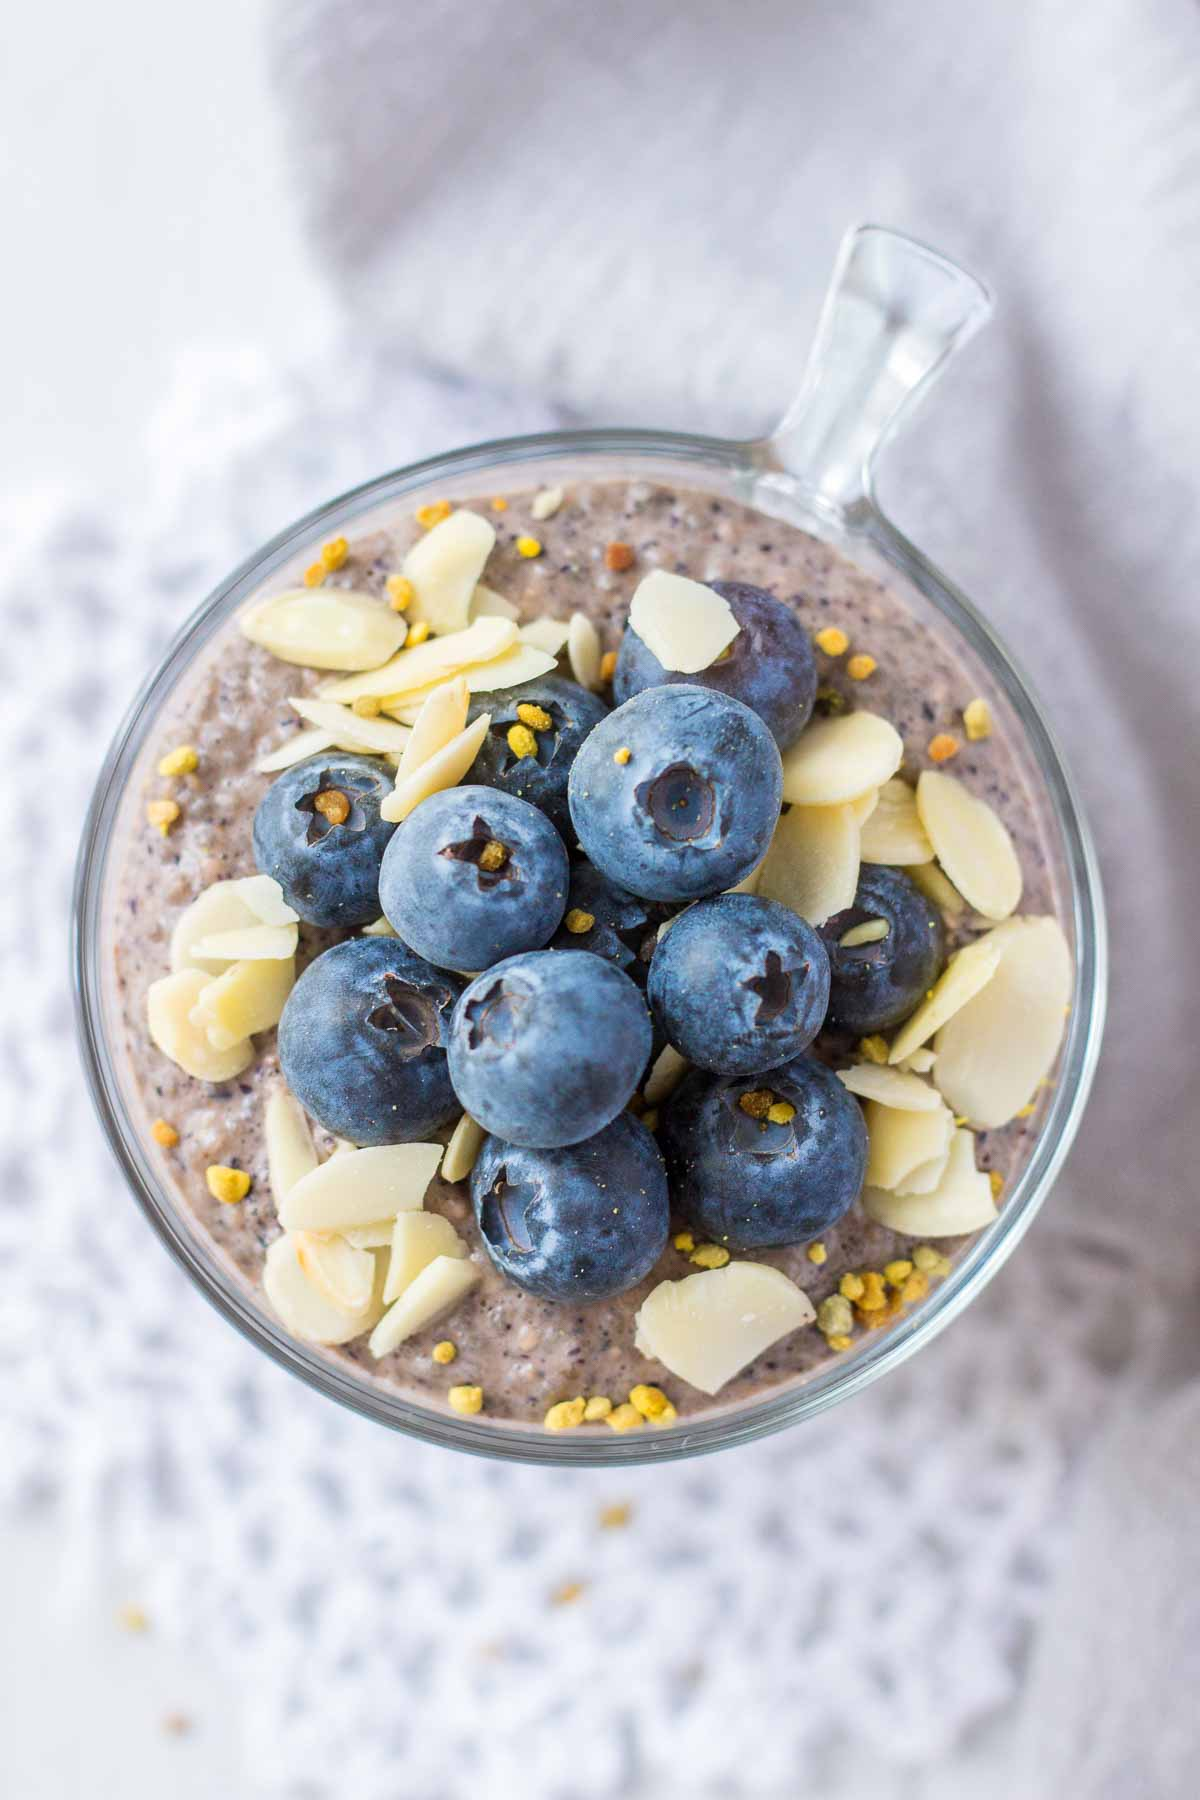 Upper view of Blueberry Chia Pudding served in a glass bowl topped with fresh blueberries